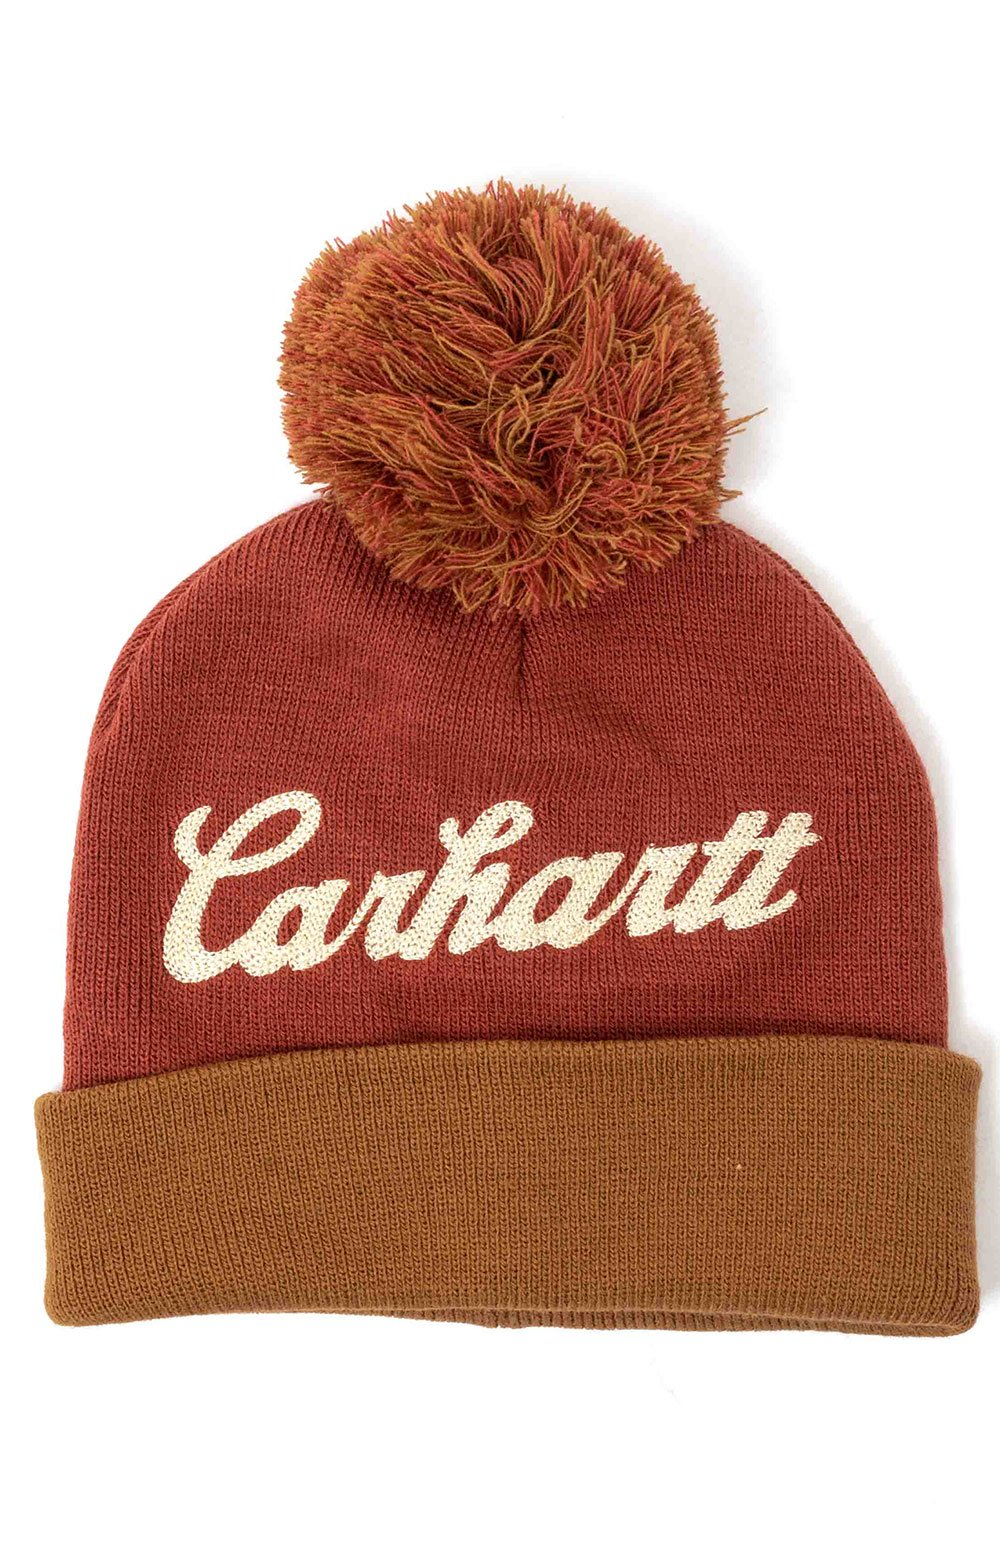 Carhartt Chainstitch Lookout Beanie (Henna)